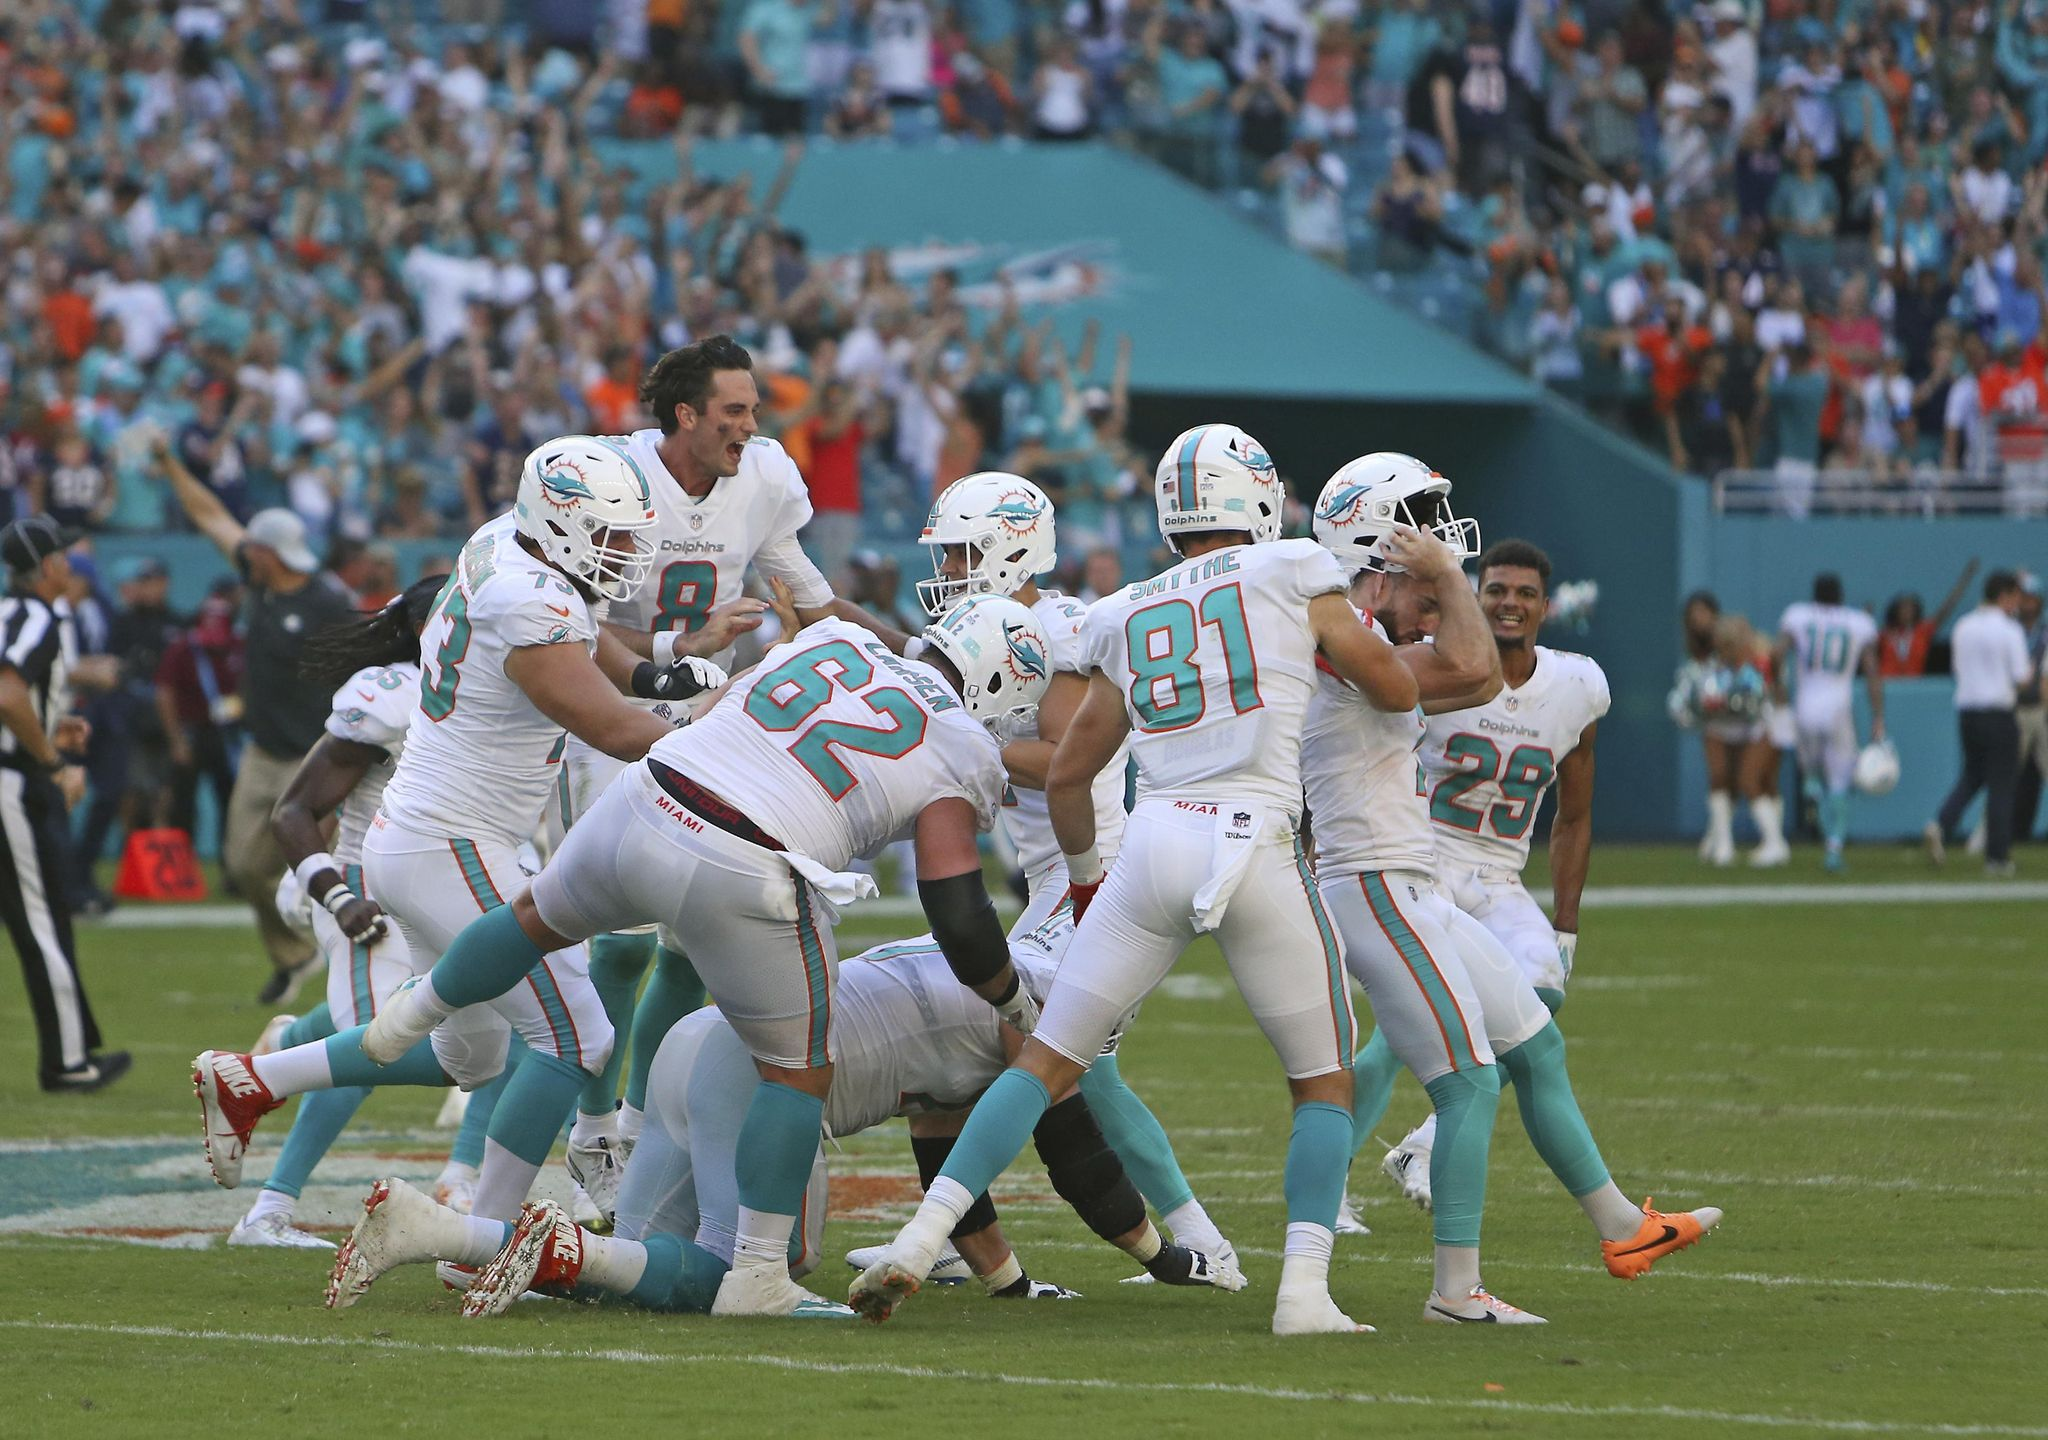 Bears_dolphins_football_59046_s2048x1440